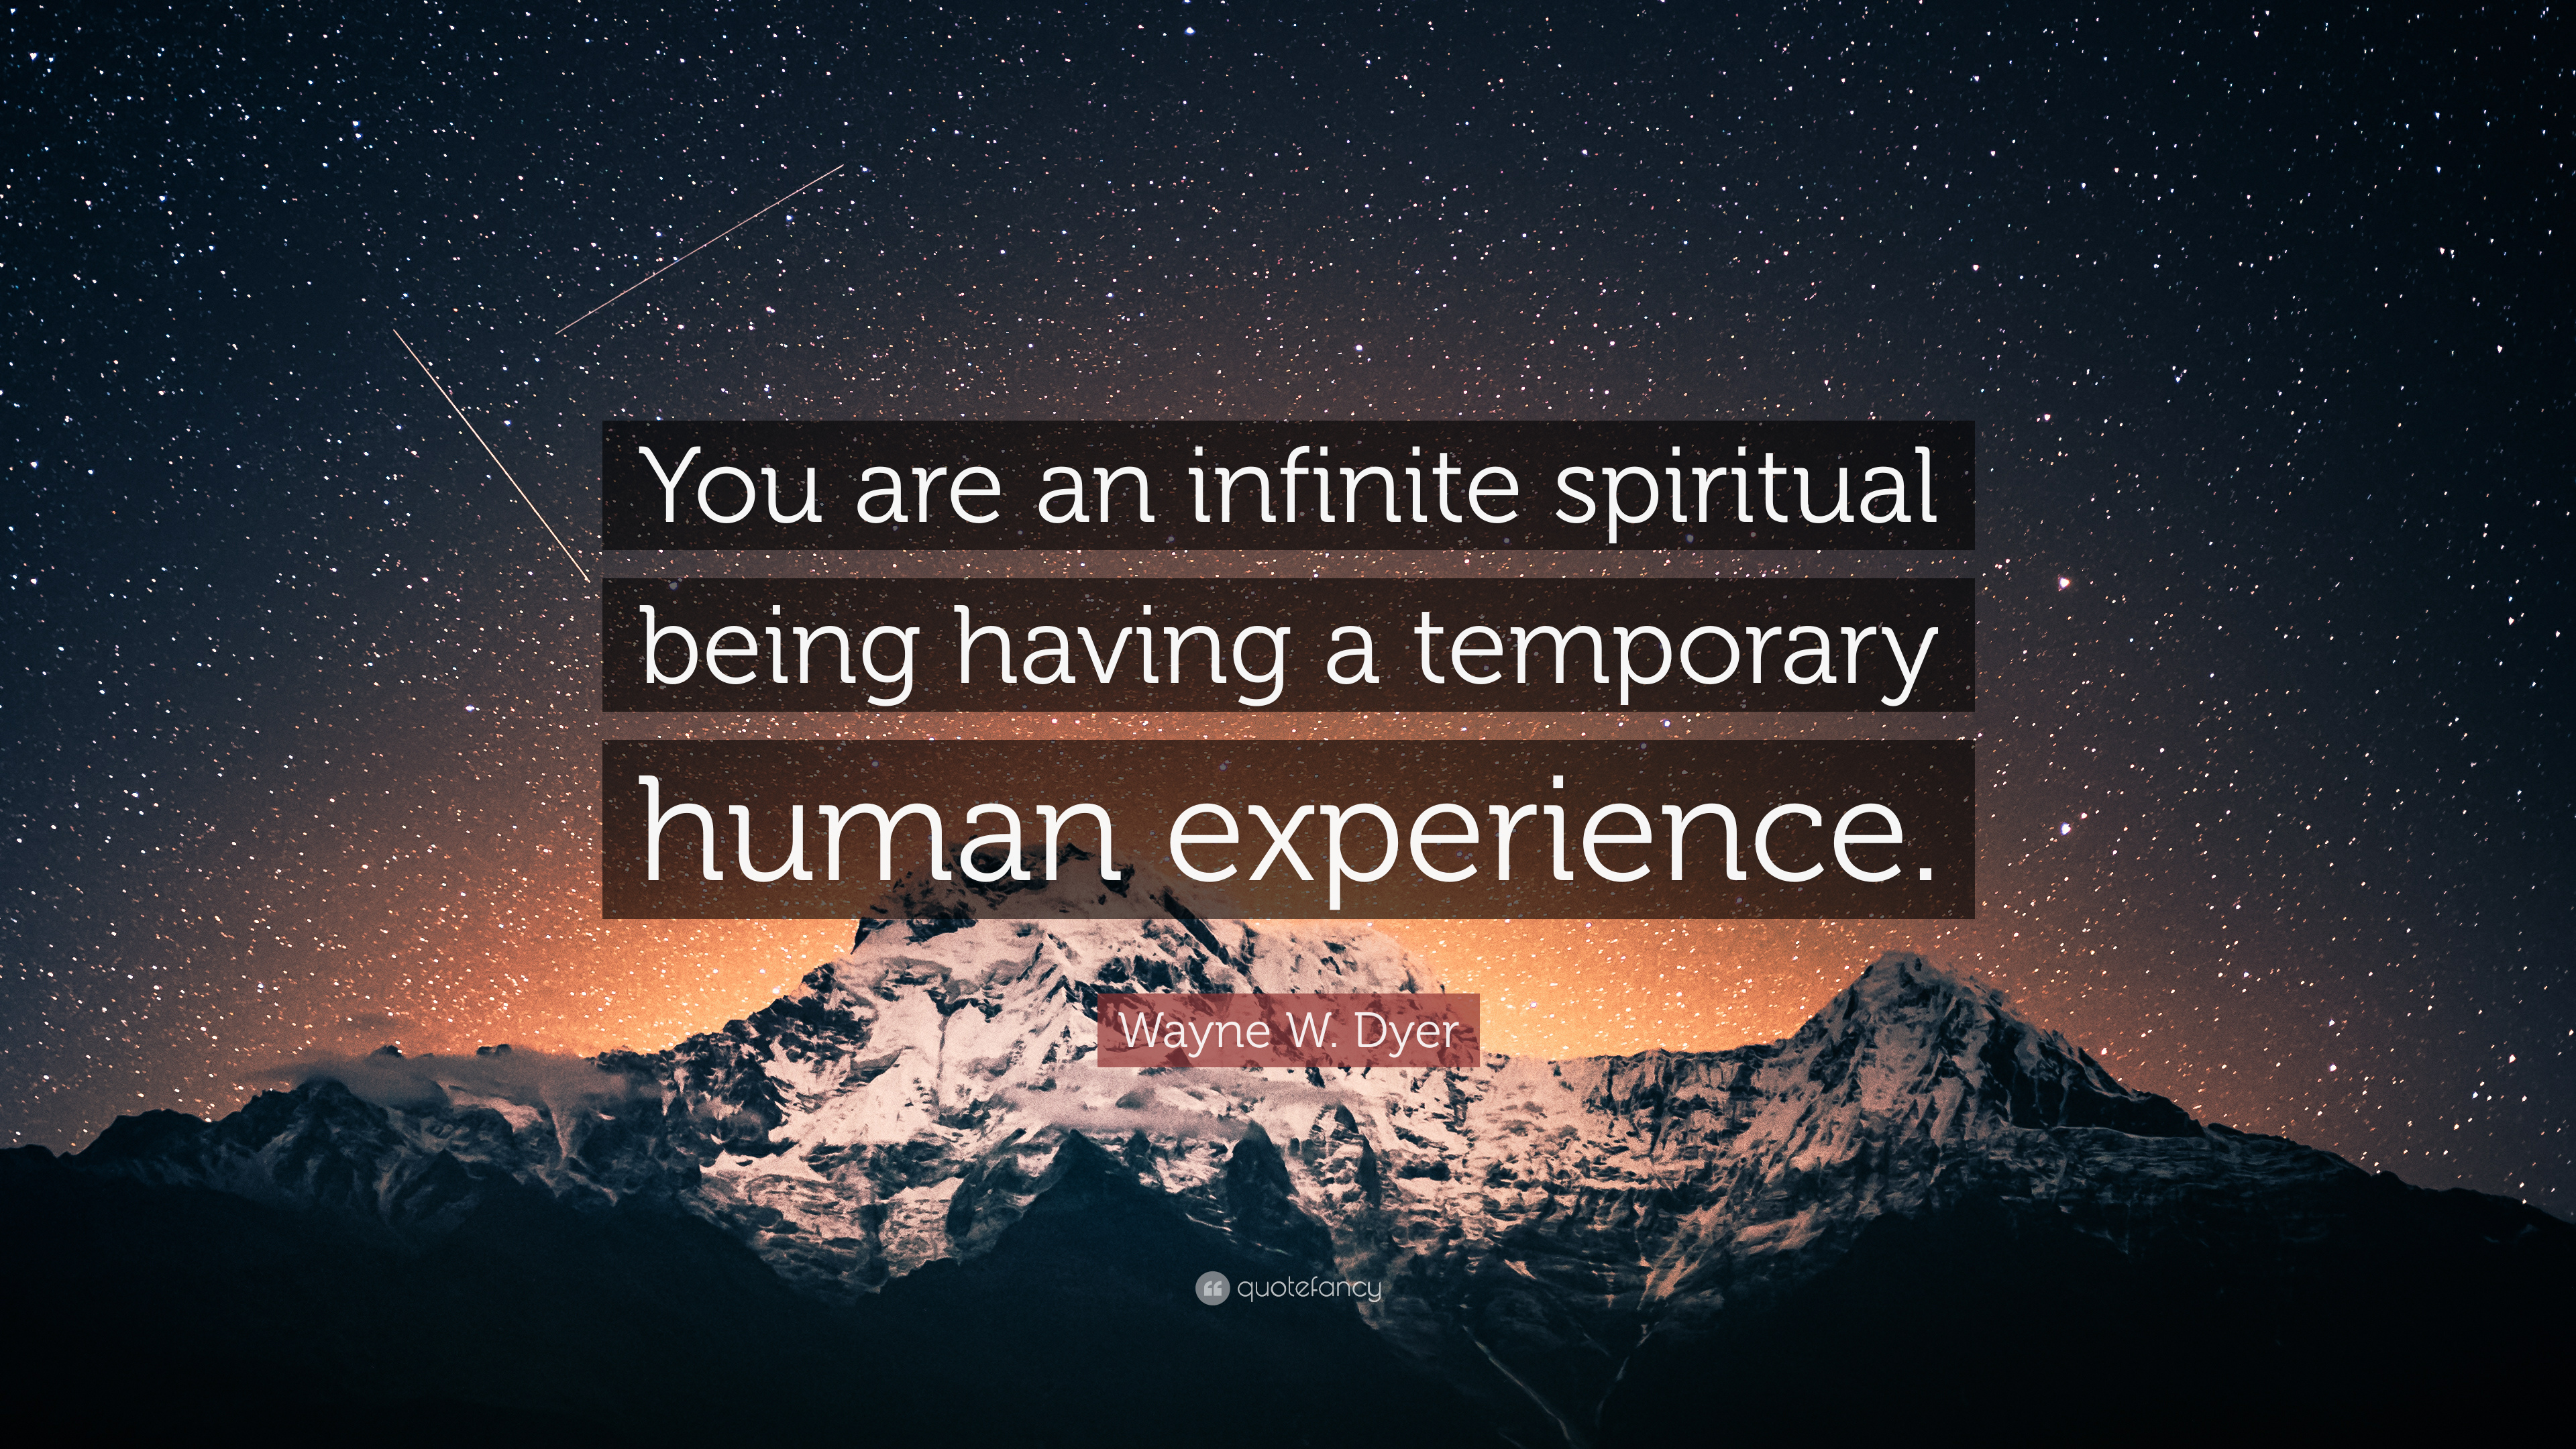 Wayne W Dyer Quote You Are An Infinite Spiritual Being